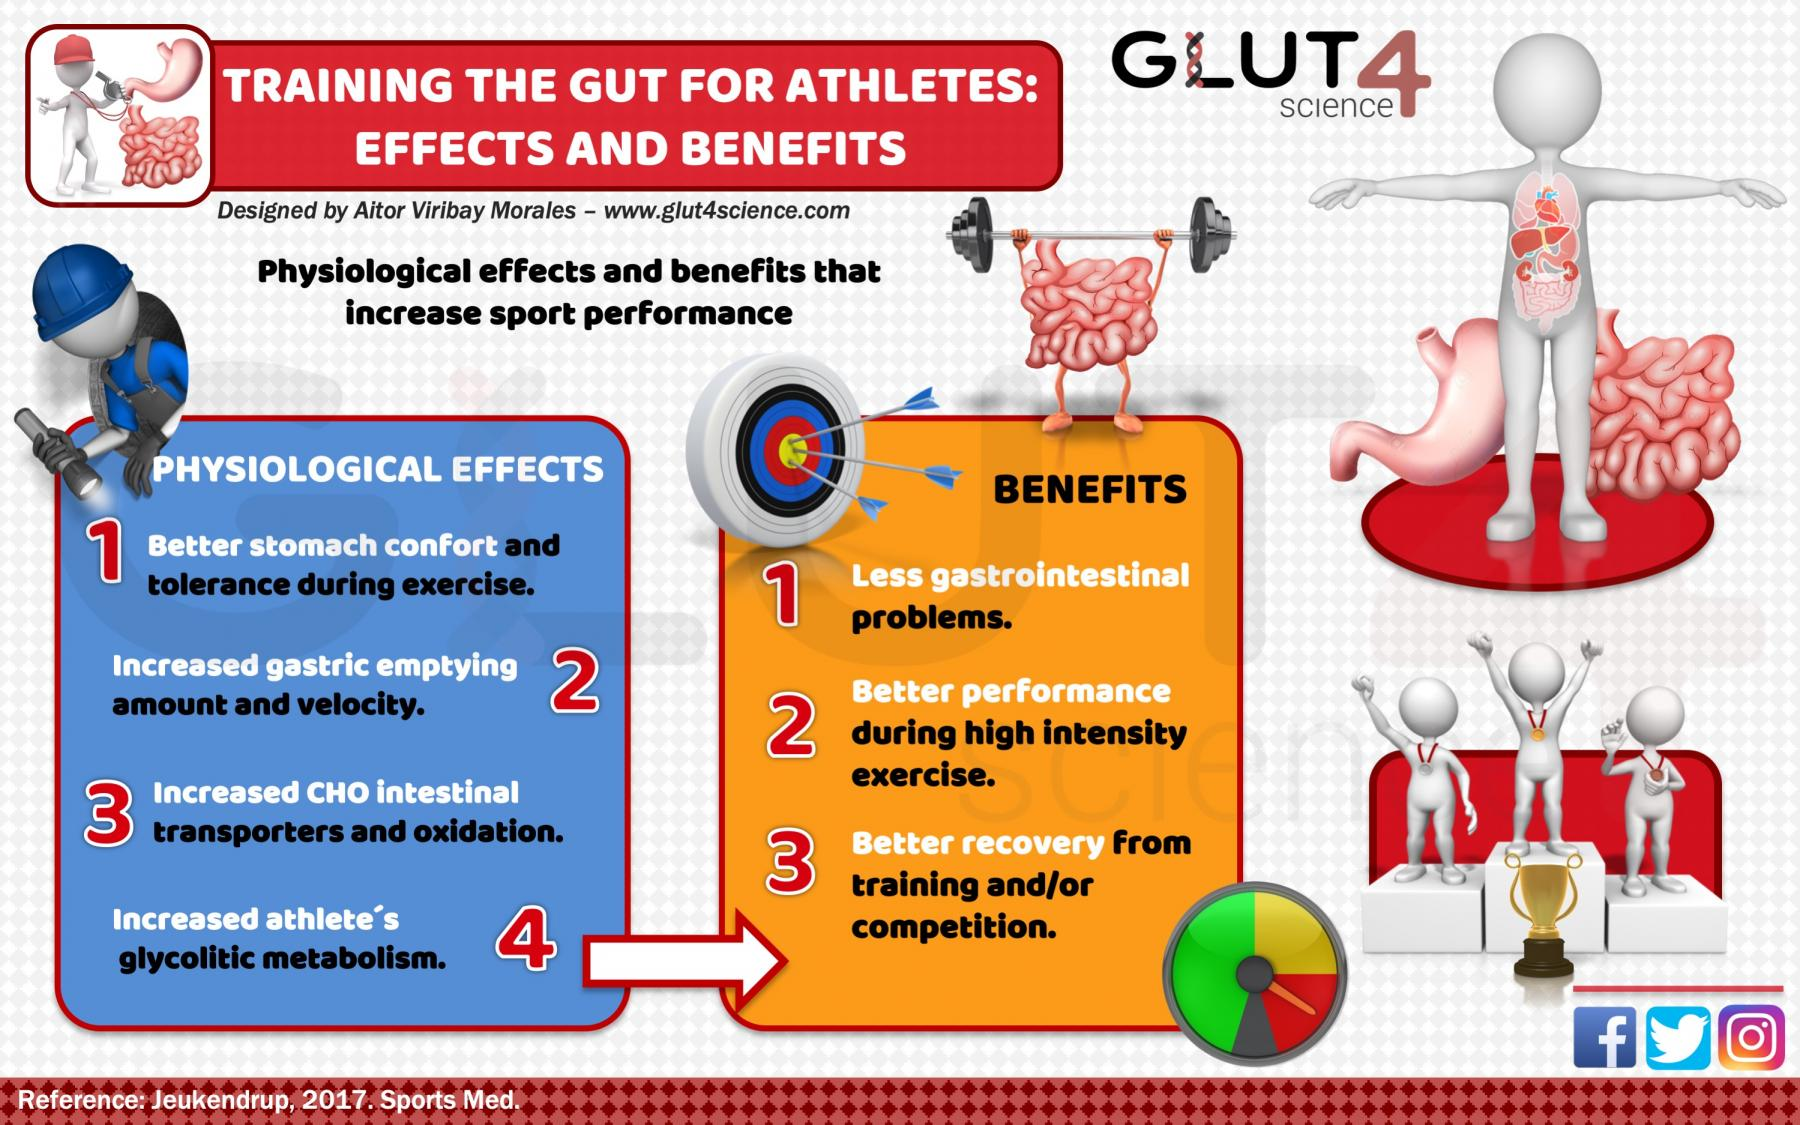 Physiological effects and benefits of Training the Gut